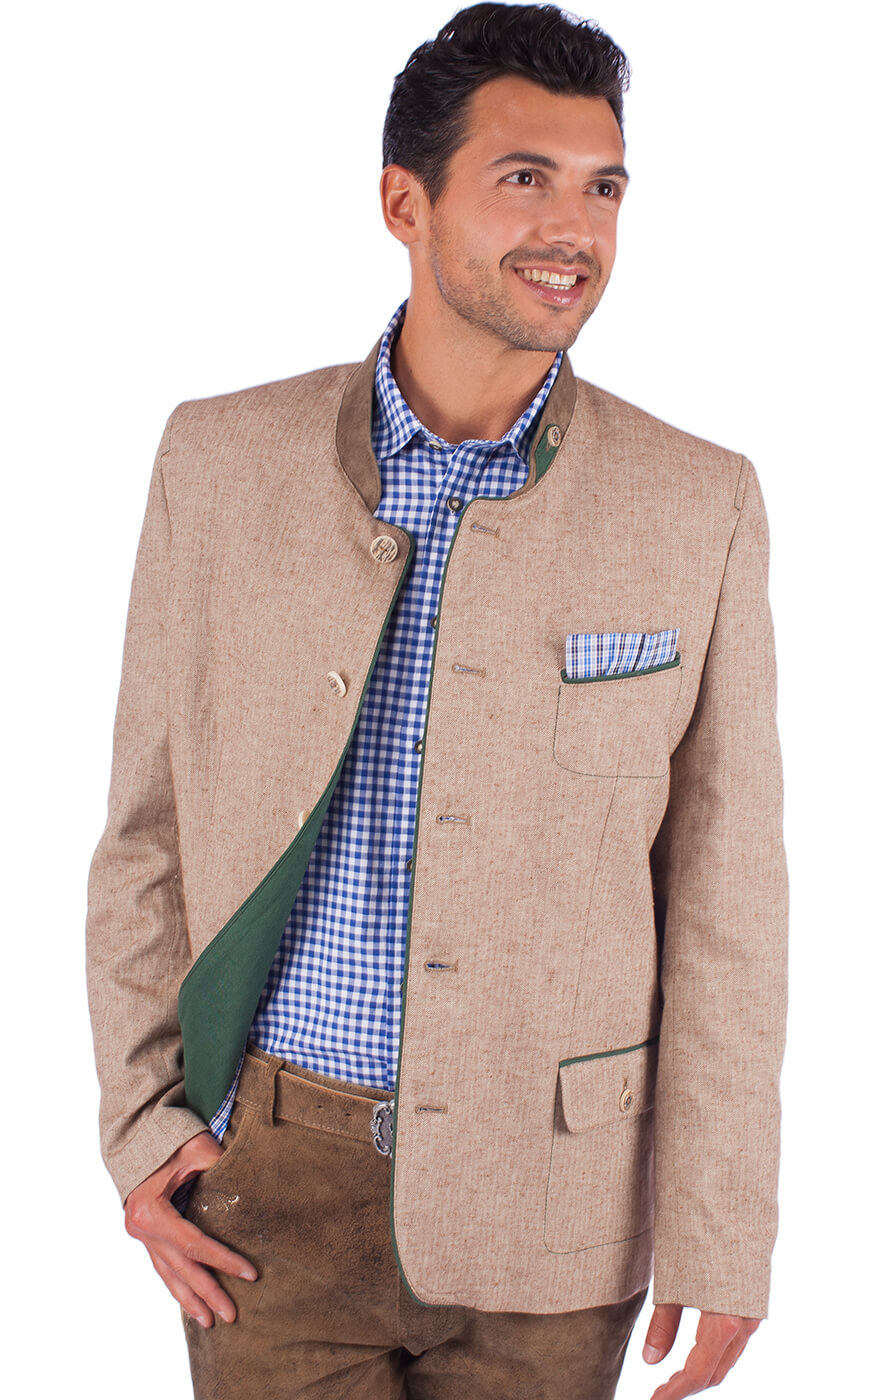 German traditional jacket WEISSHORN beige von OS-Trachten